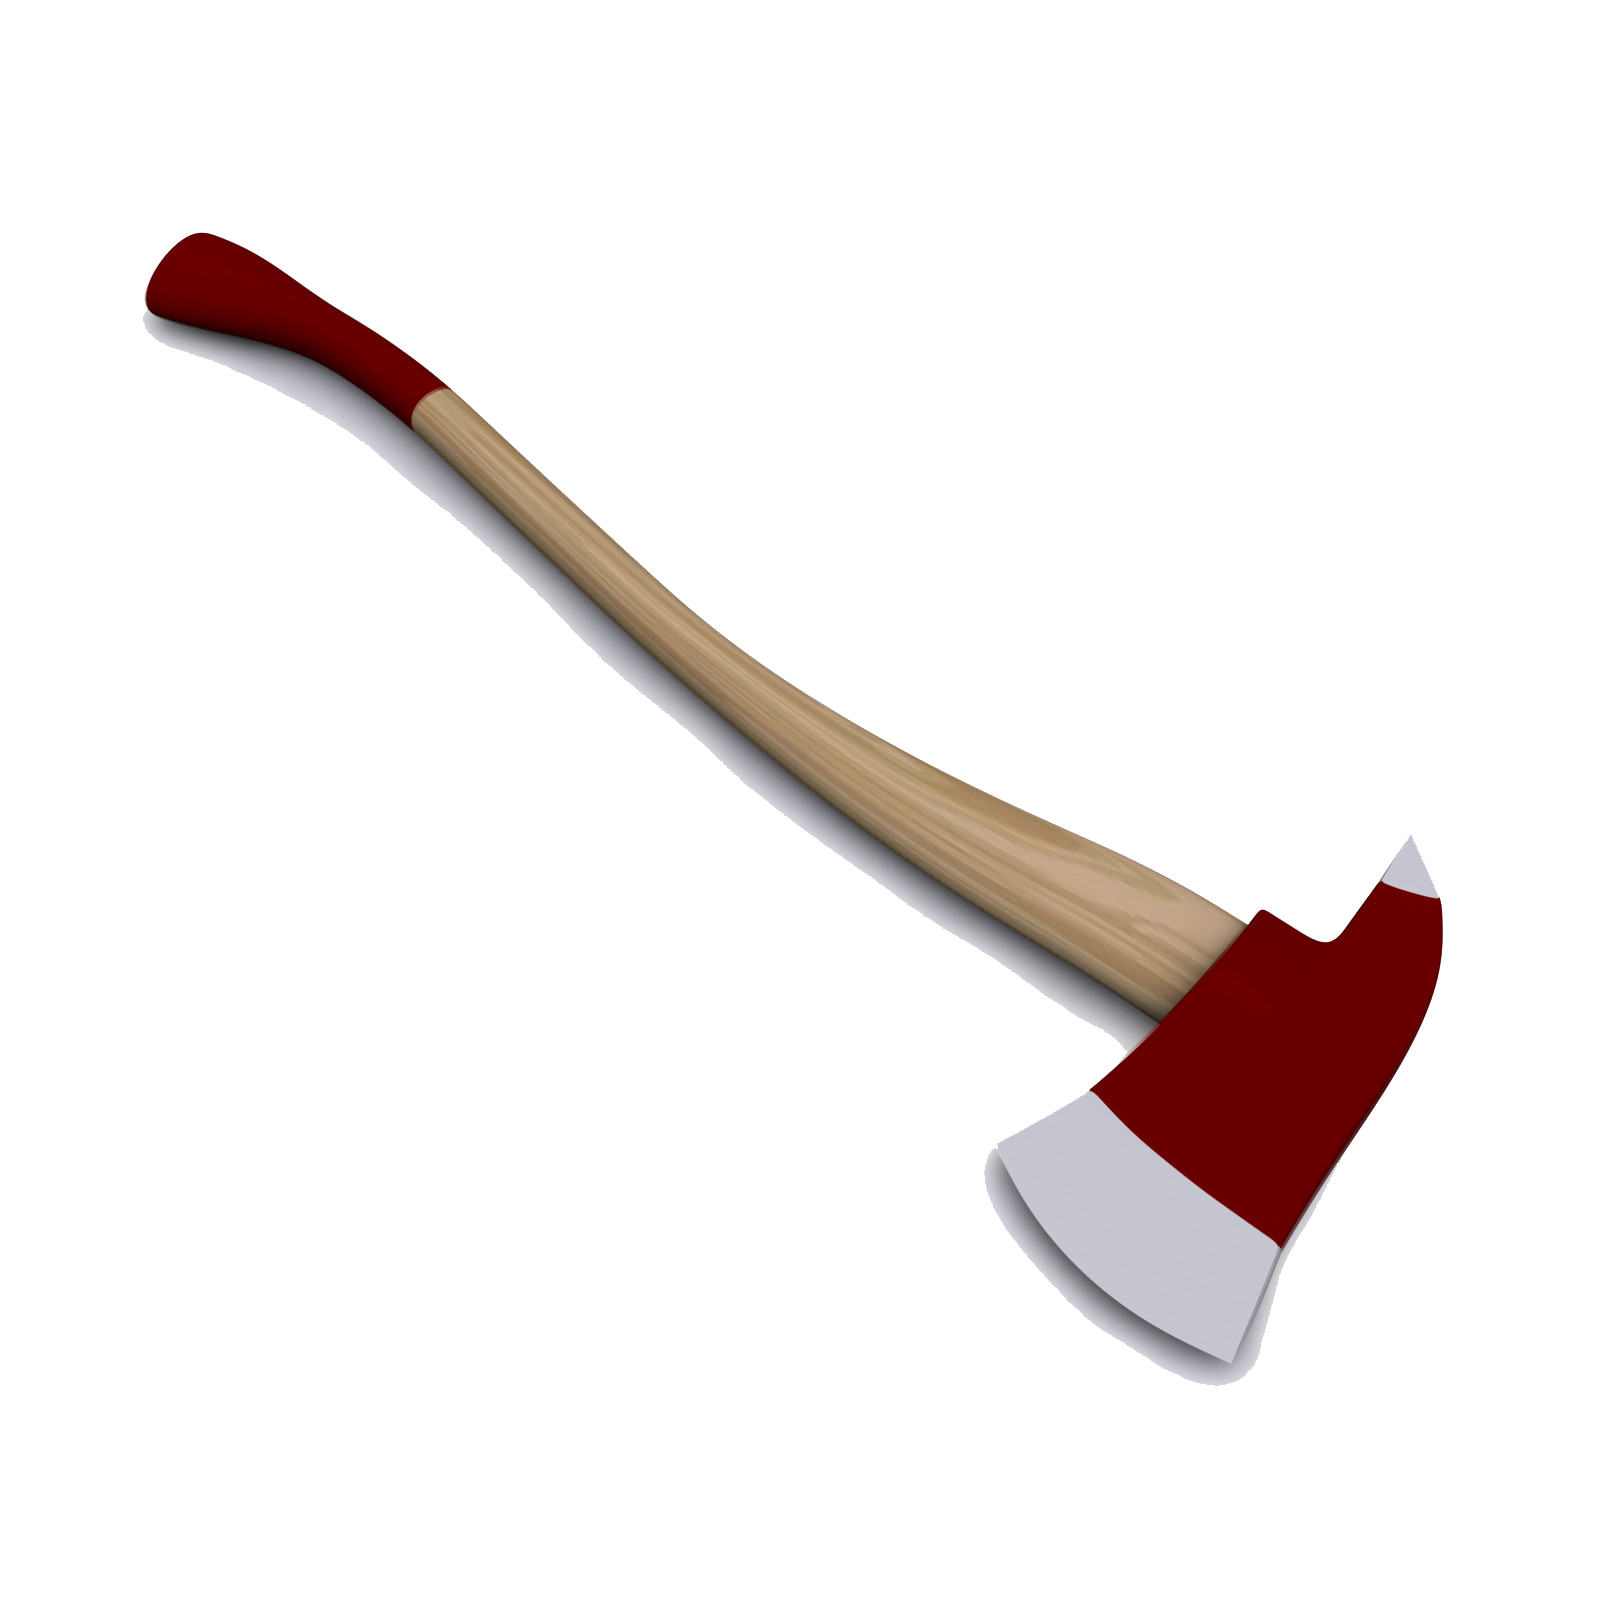 Axe Download Png PNG Image - Ax PNG HD